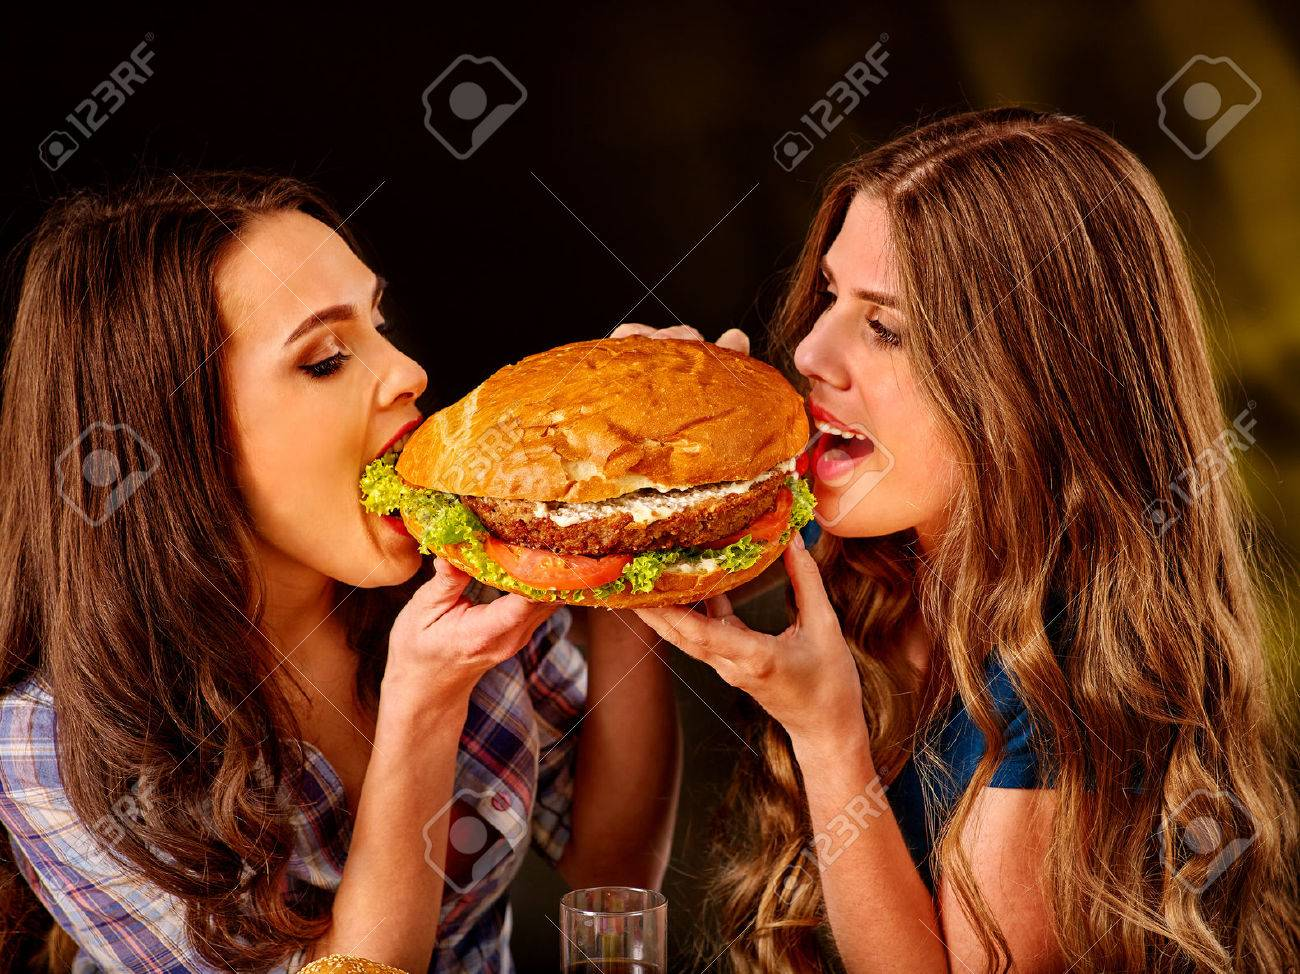 Girl holding and bite big hamburger from different sides. Fastfood concept. Cheeseburger on foreground. - 48930228